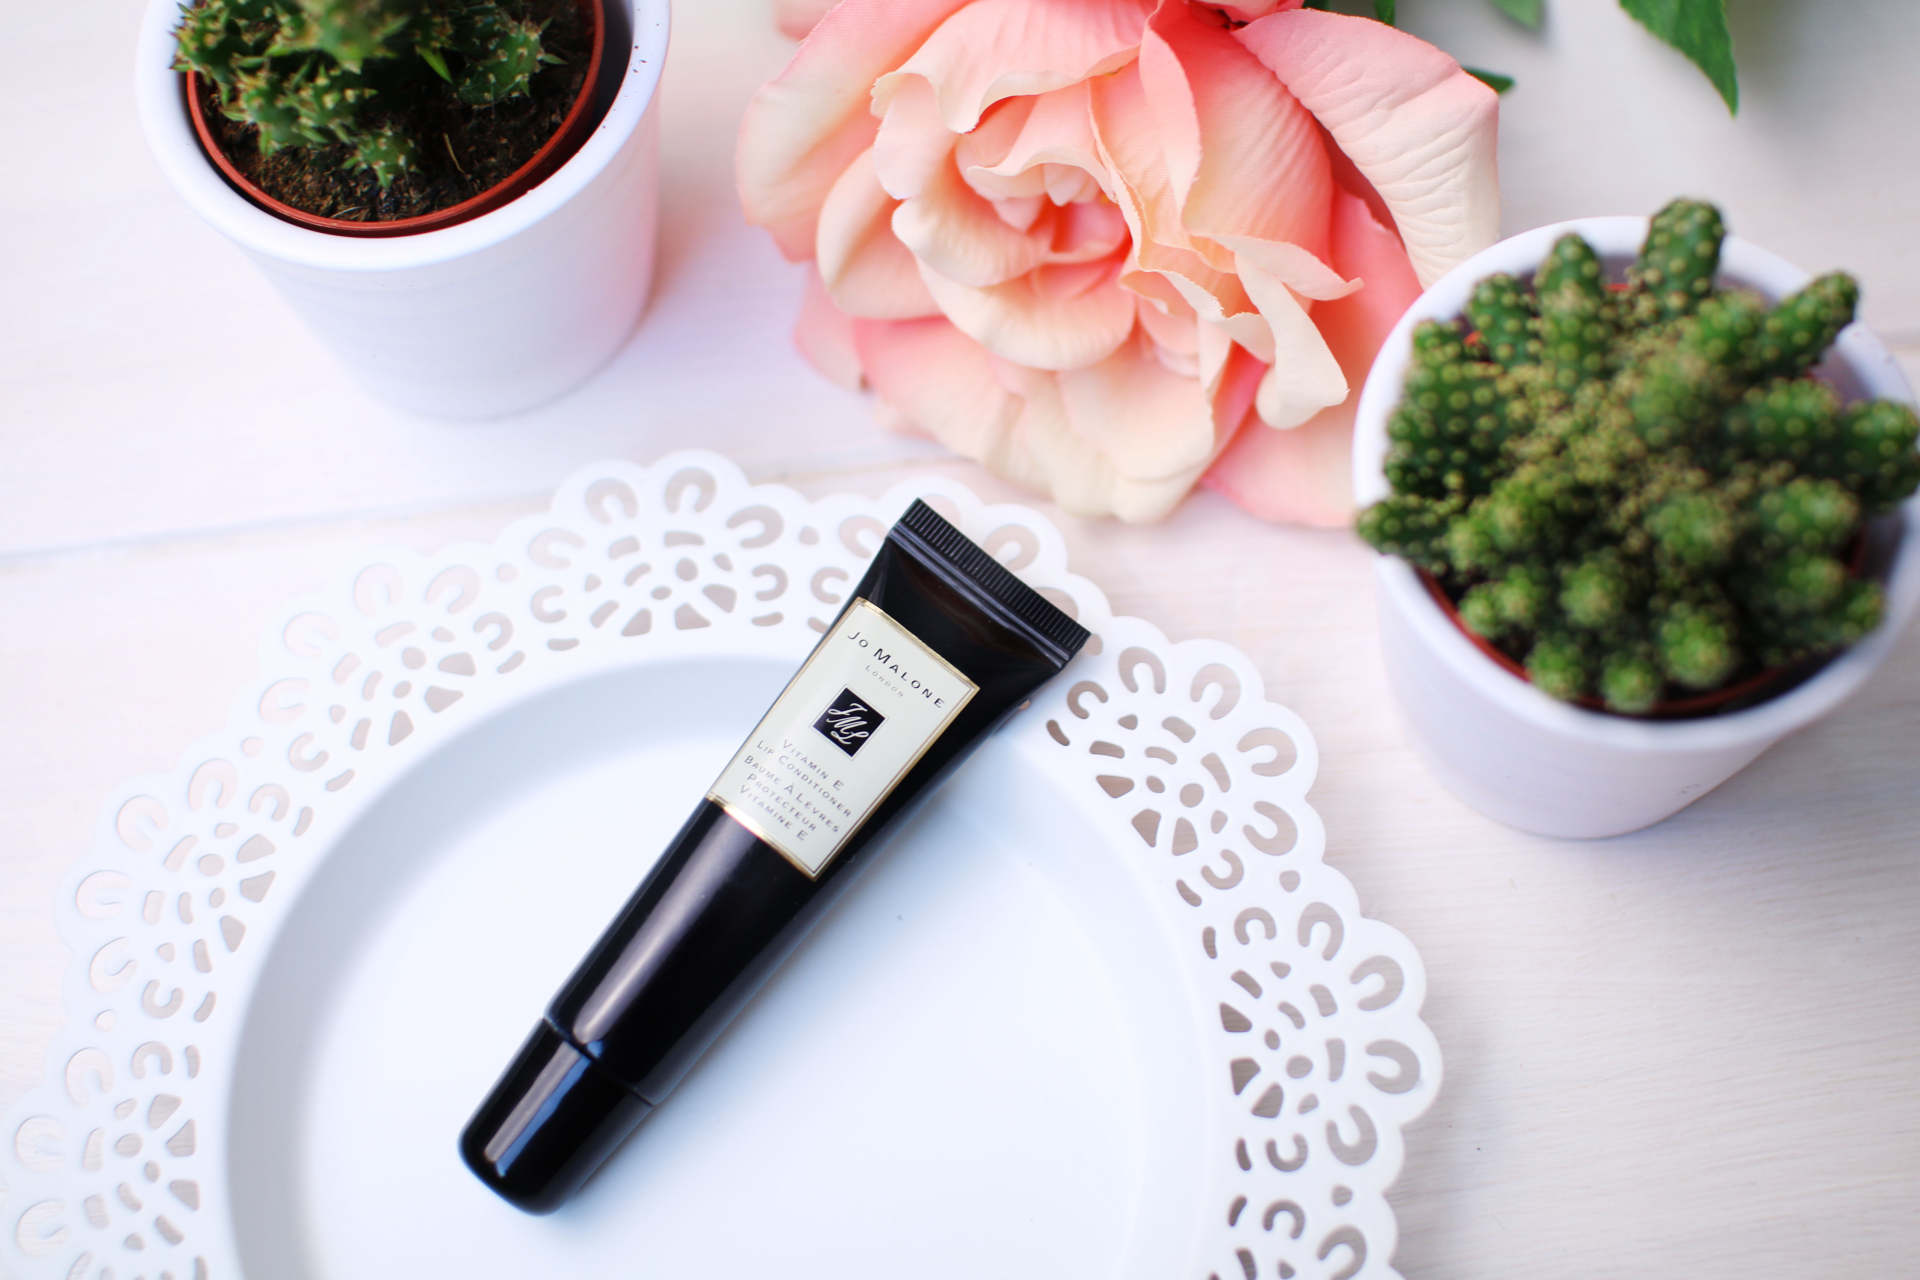 jo malone luxury lip balm comparison inthefrow